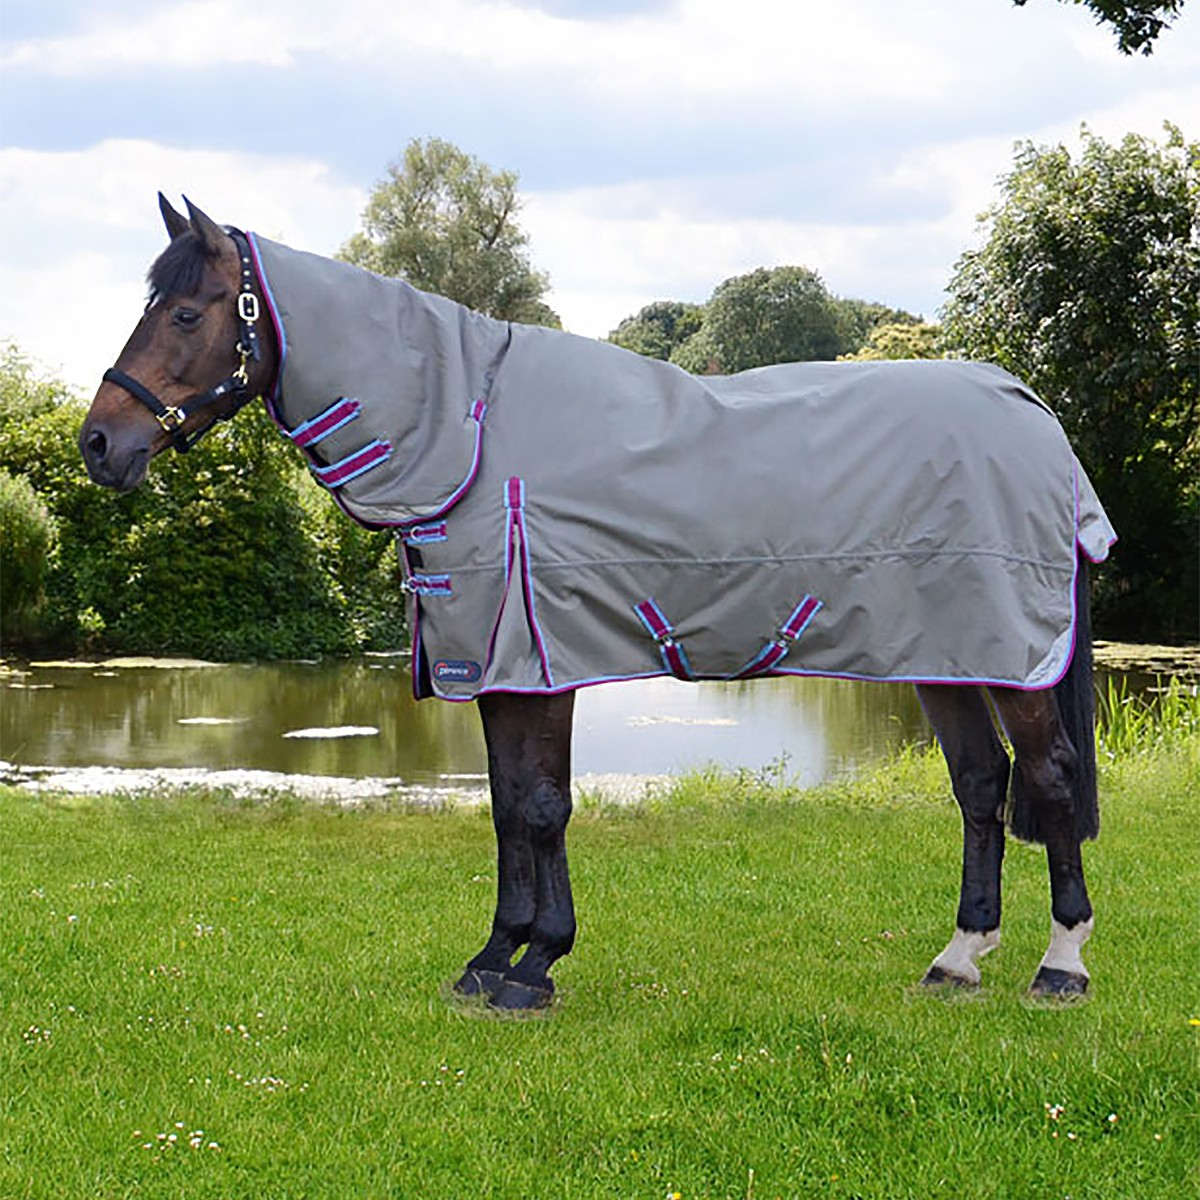 Hy DefenceX System 300g Heavyweight Combo Turnout Rug